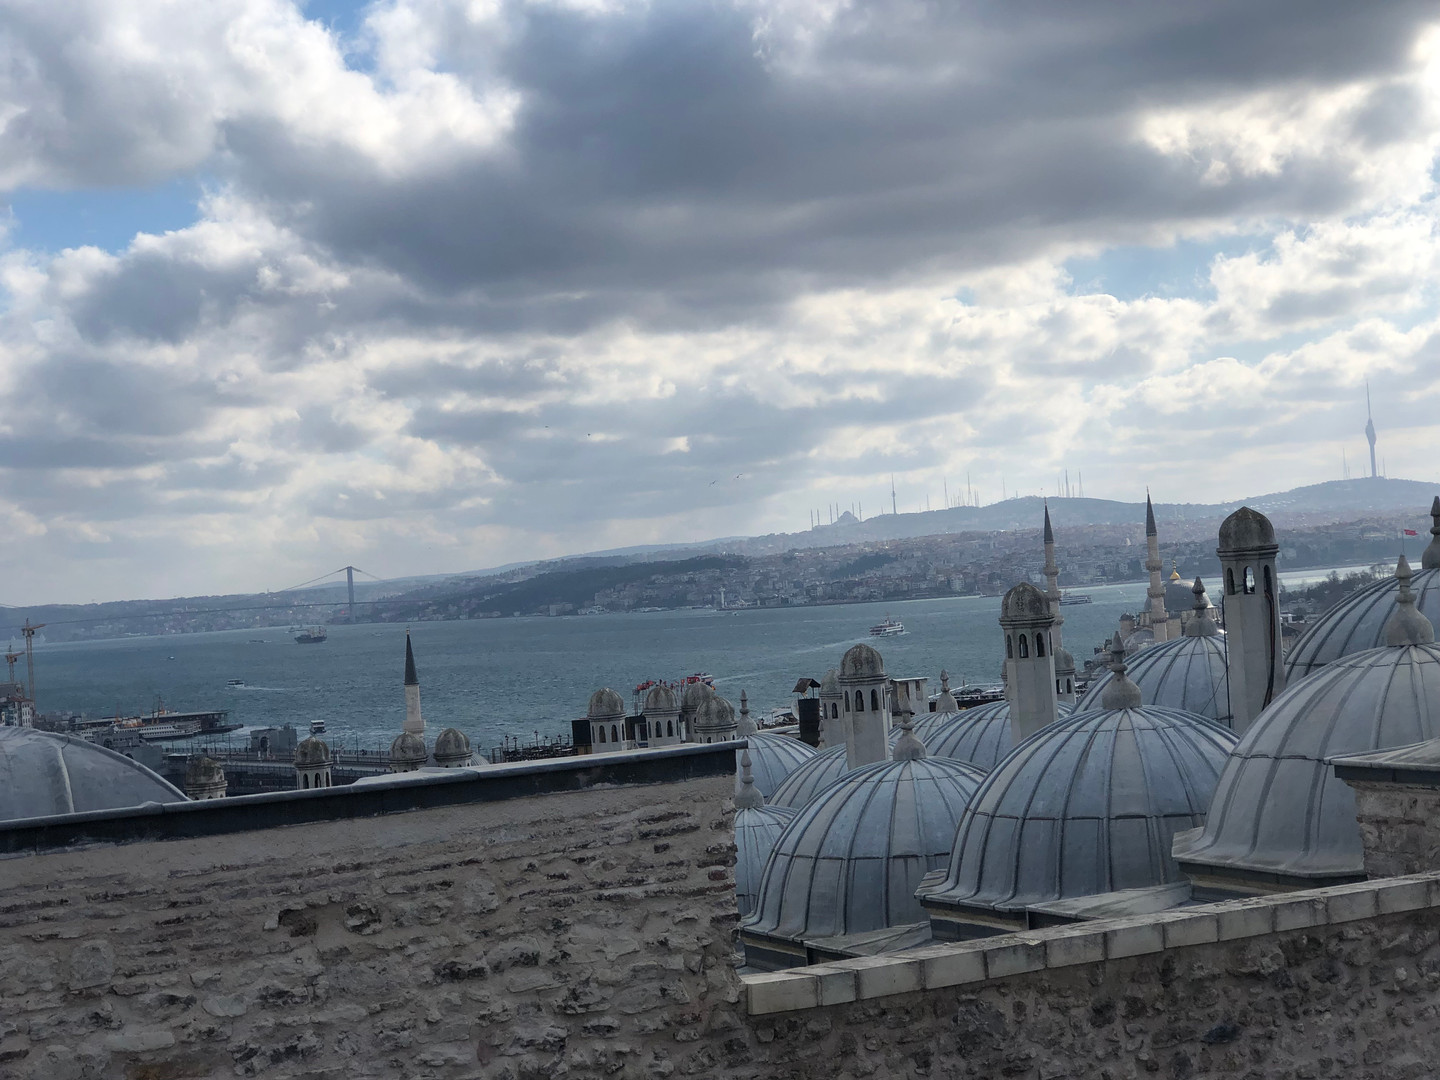 view from Süleymaniye Mosque